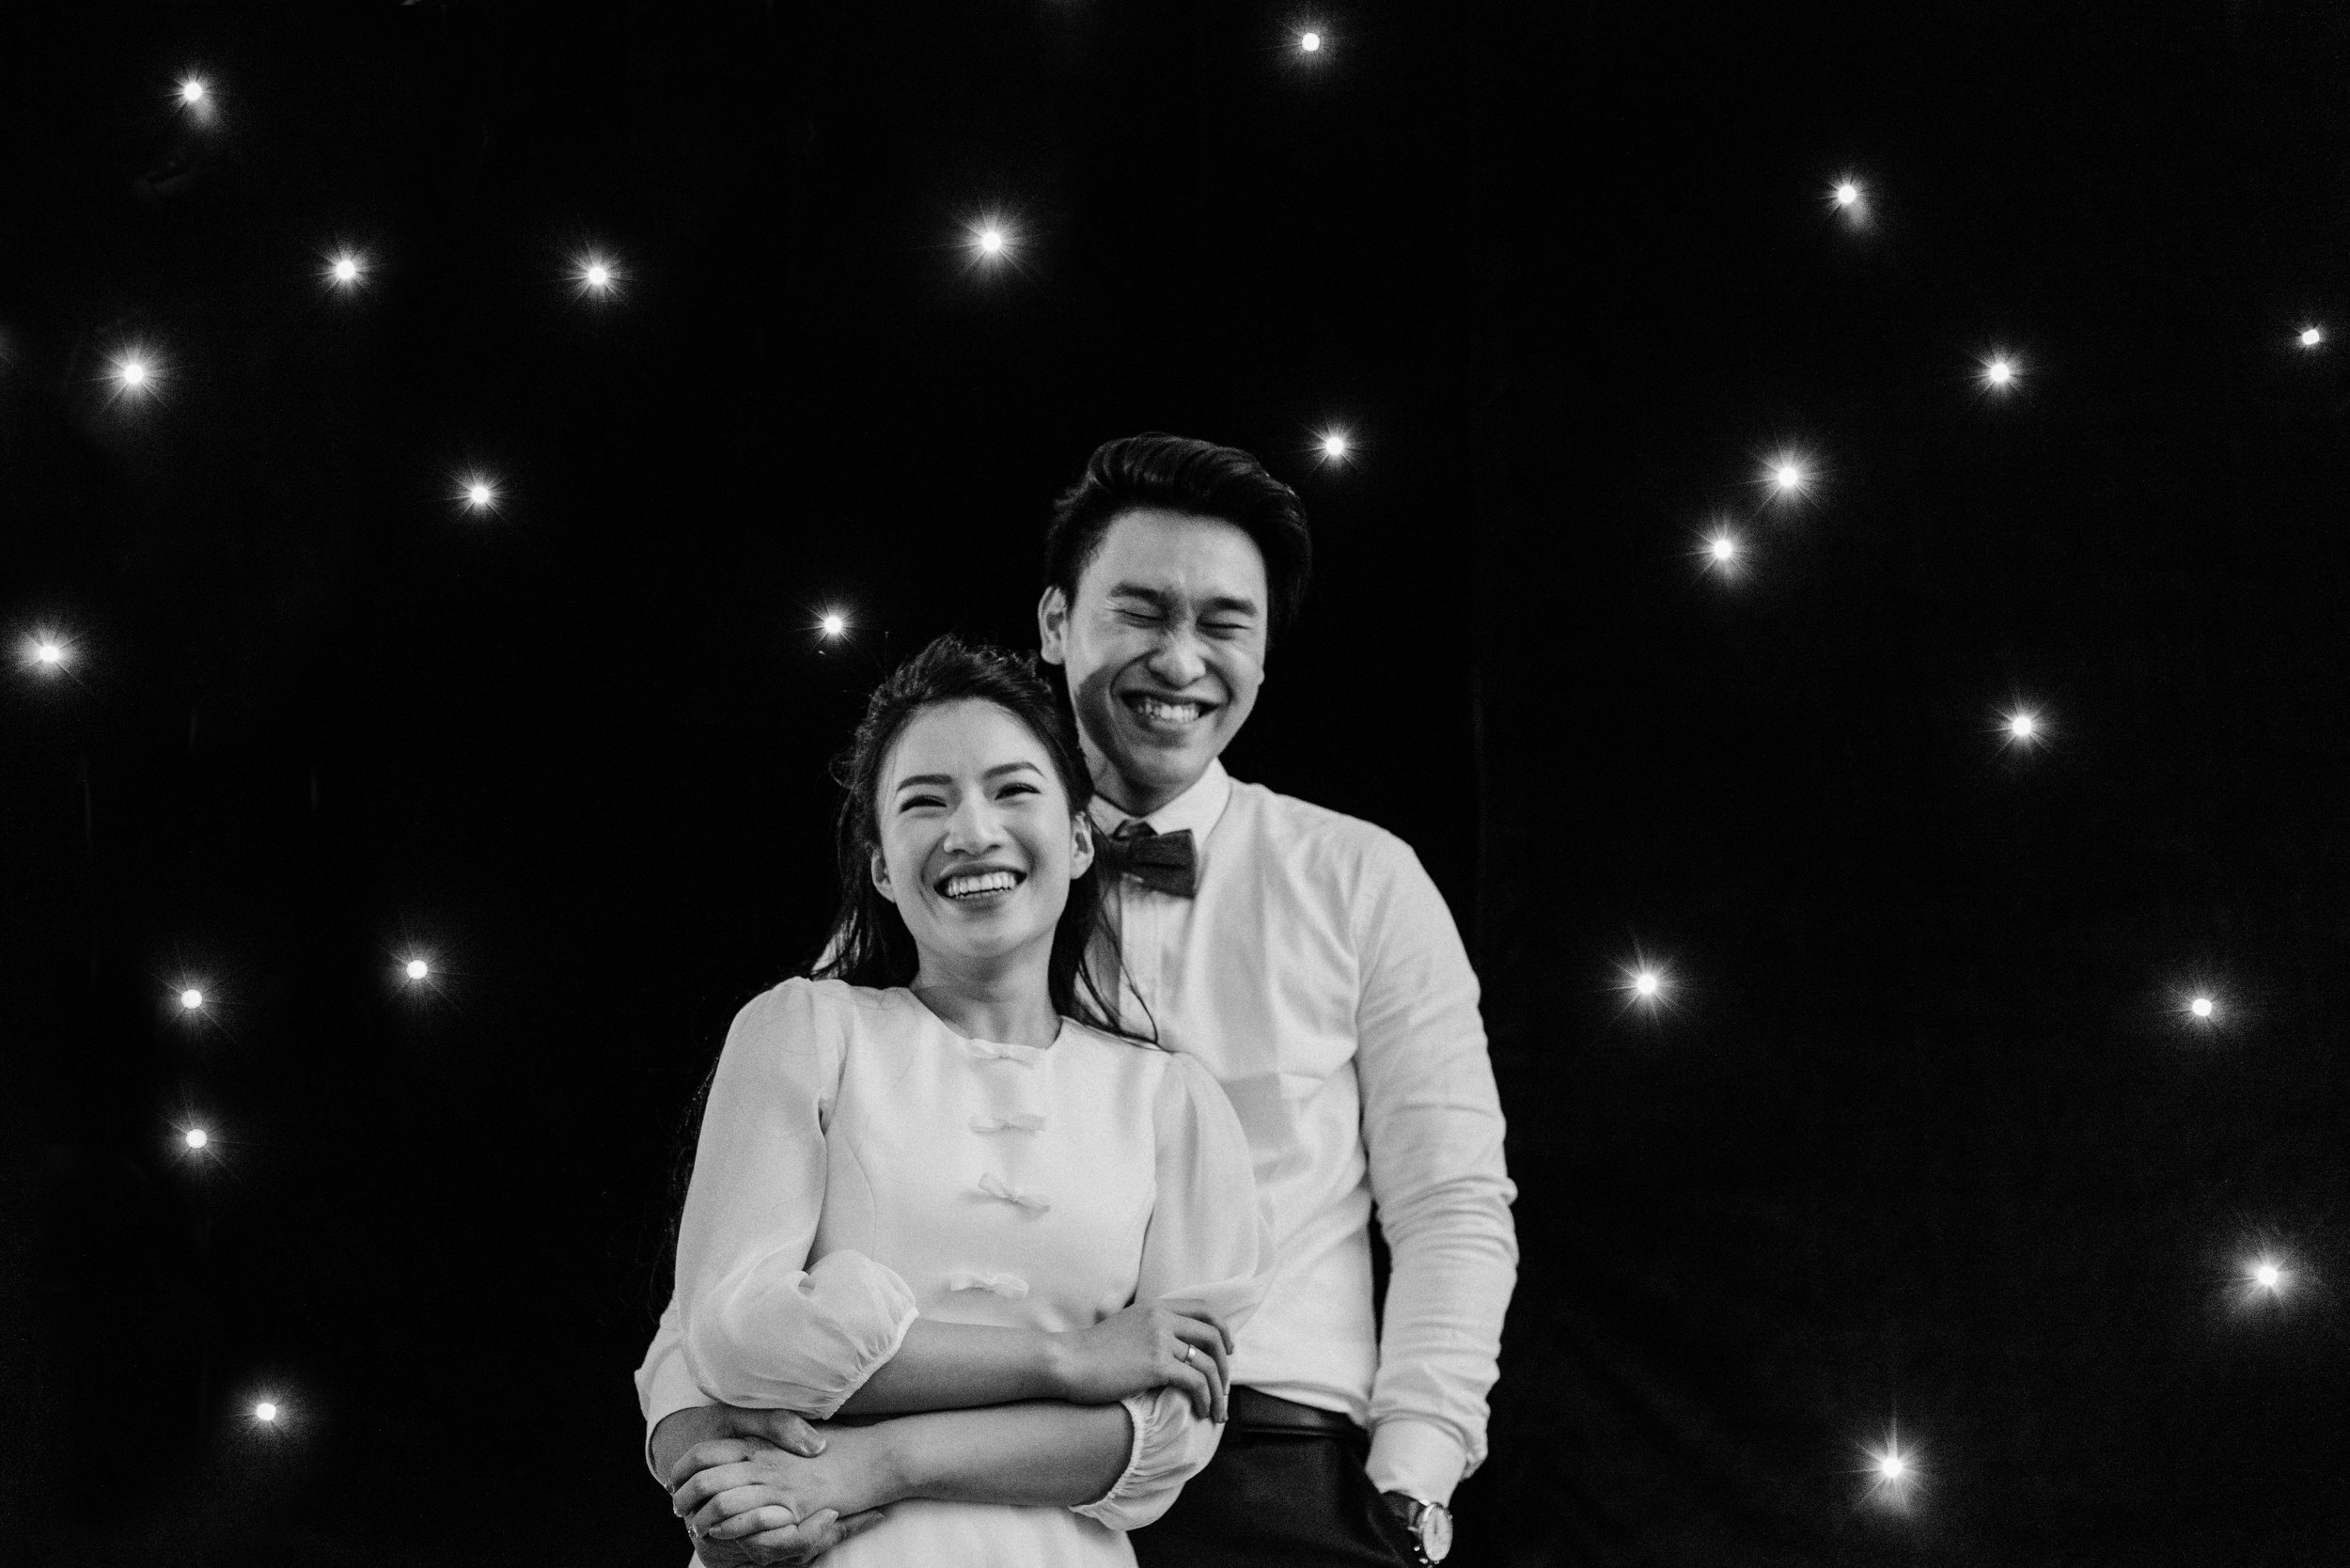 TRUONG AN & DUC ANH - It's been 2 months since the wedding yet we still vividly remember our first meeting. Before Quynh Anh introduced us to you, all we had was a blurry vision and no clue where to start. Although Giang was totally surprise by our young age, she always inventively listened to all of our requests and crazy ideas and somehow manage to turned them into one dream wedding for us.